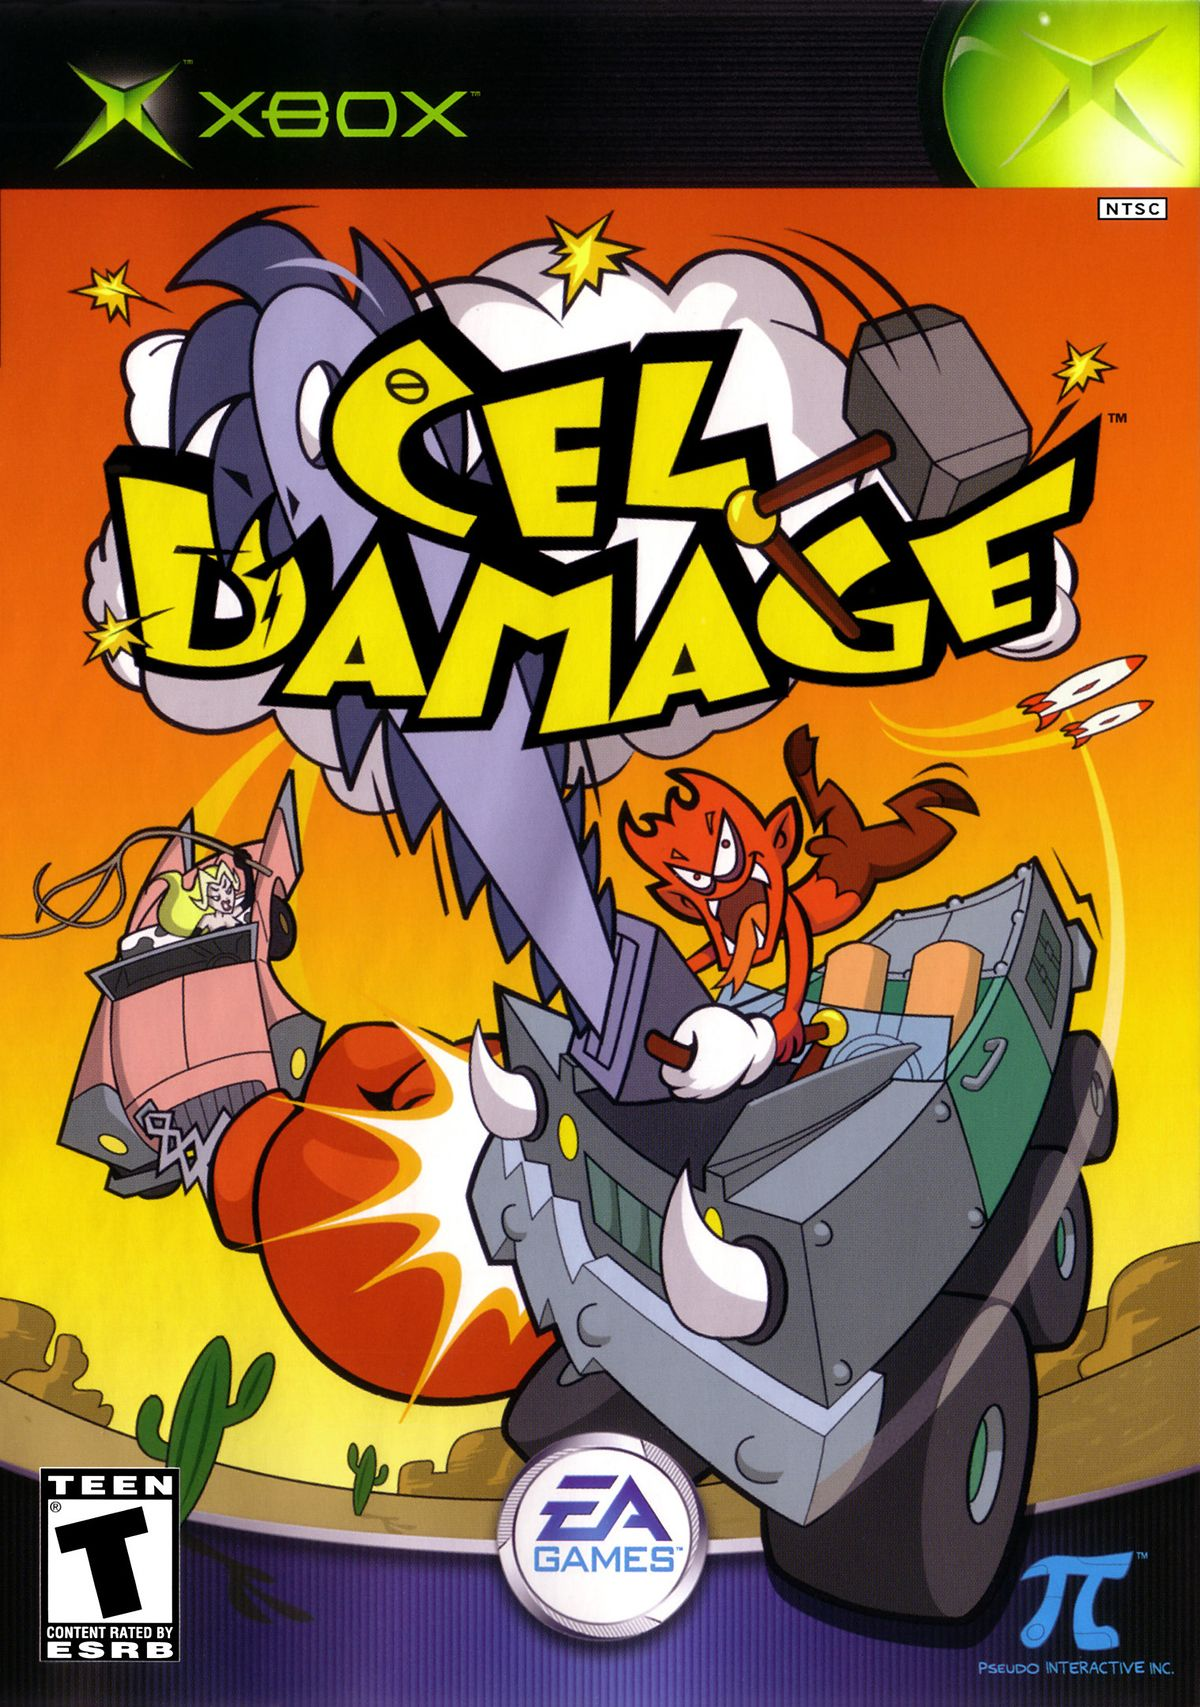 Cel Damage  StrategyWiki the video game walkthrough and